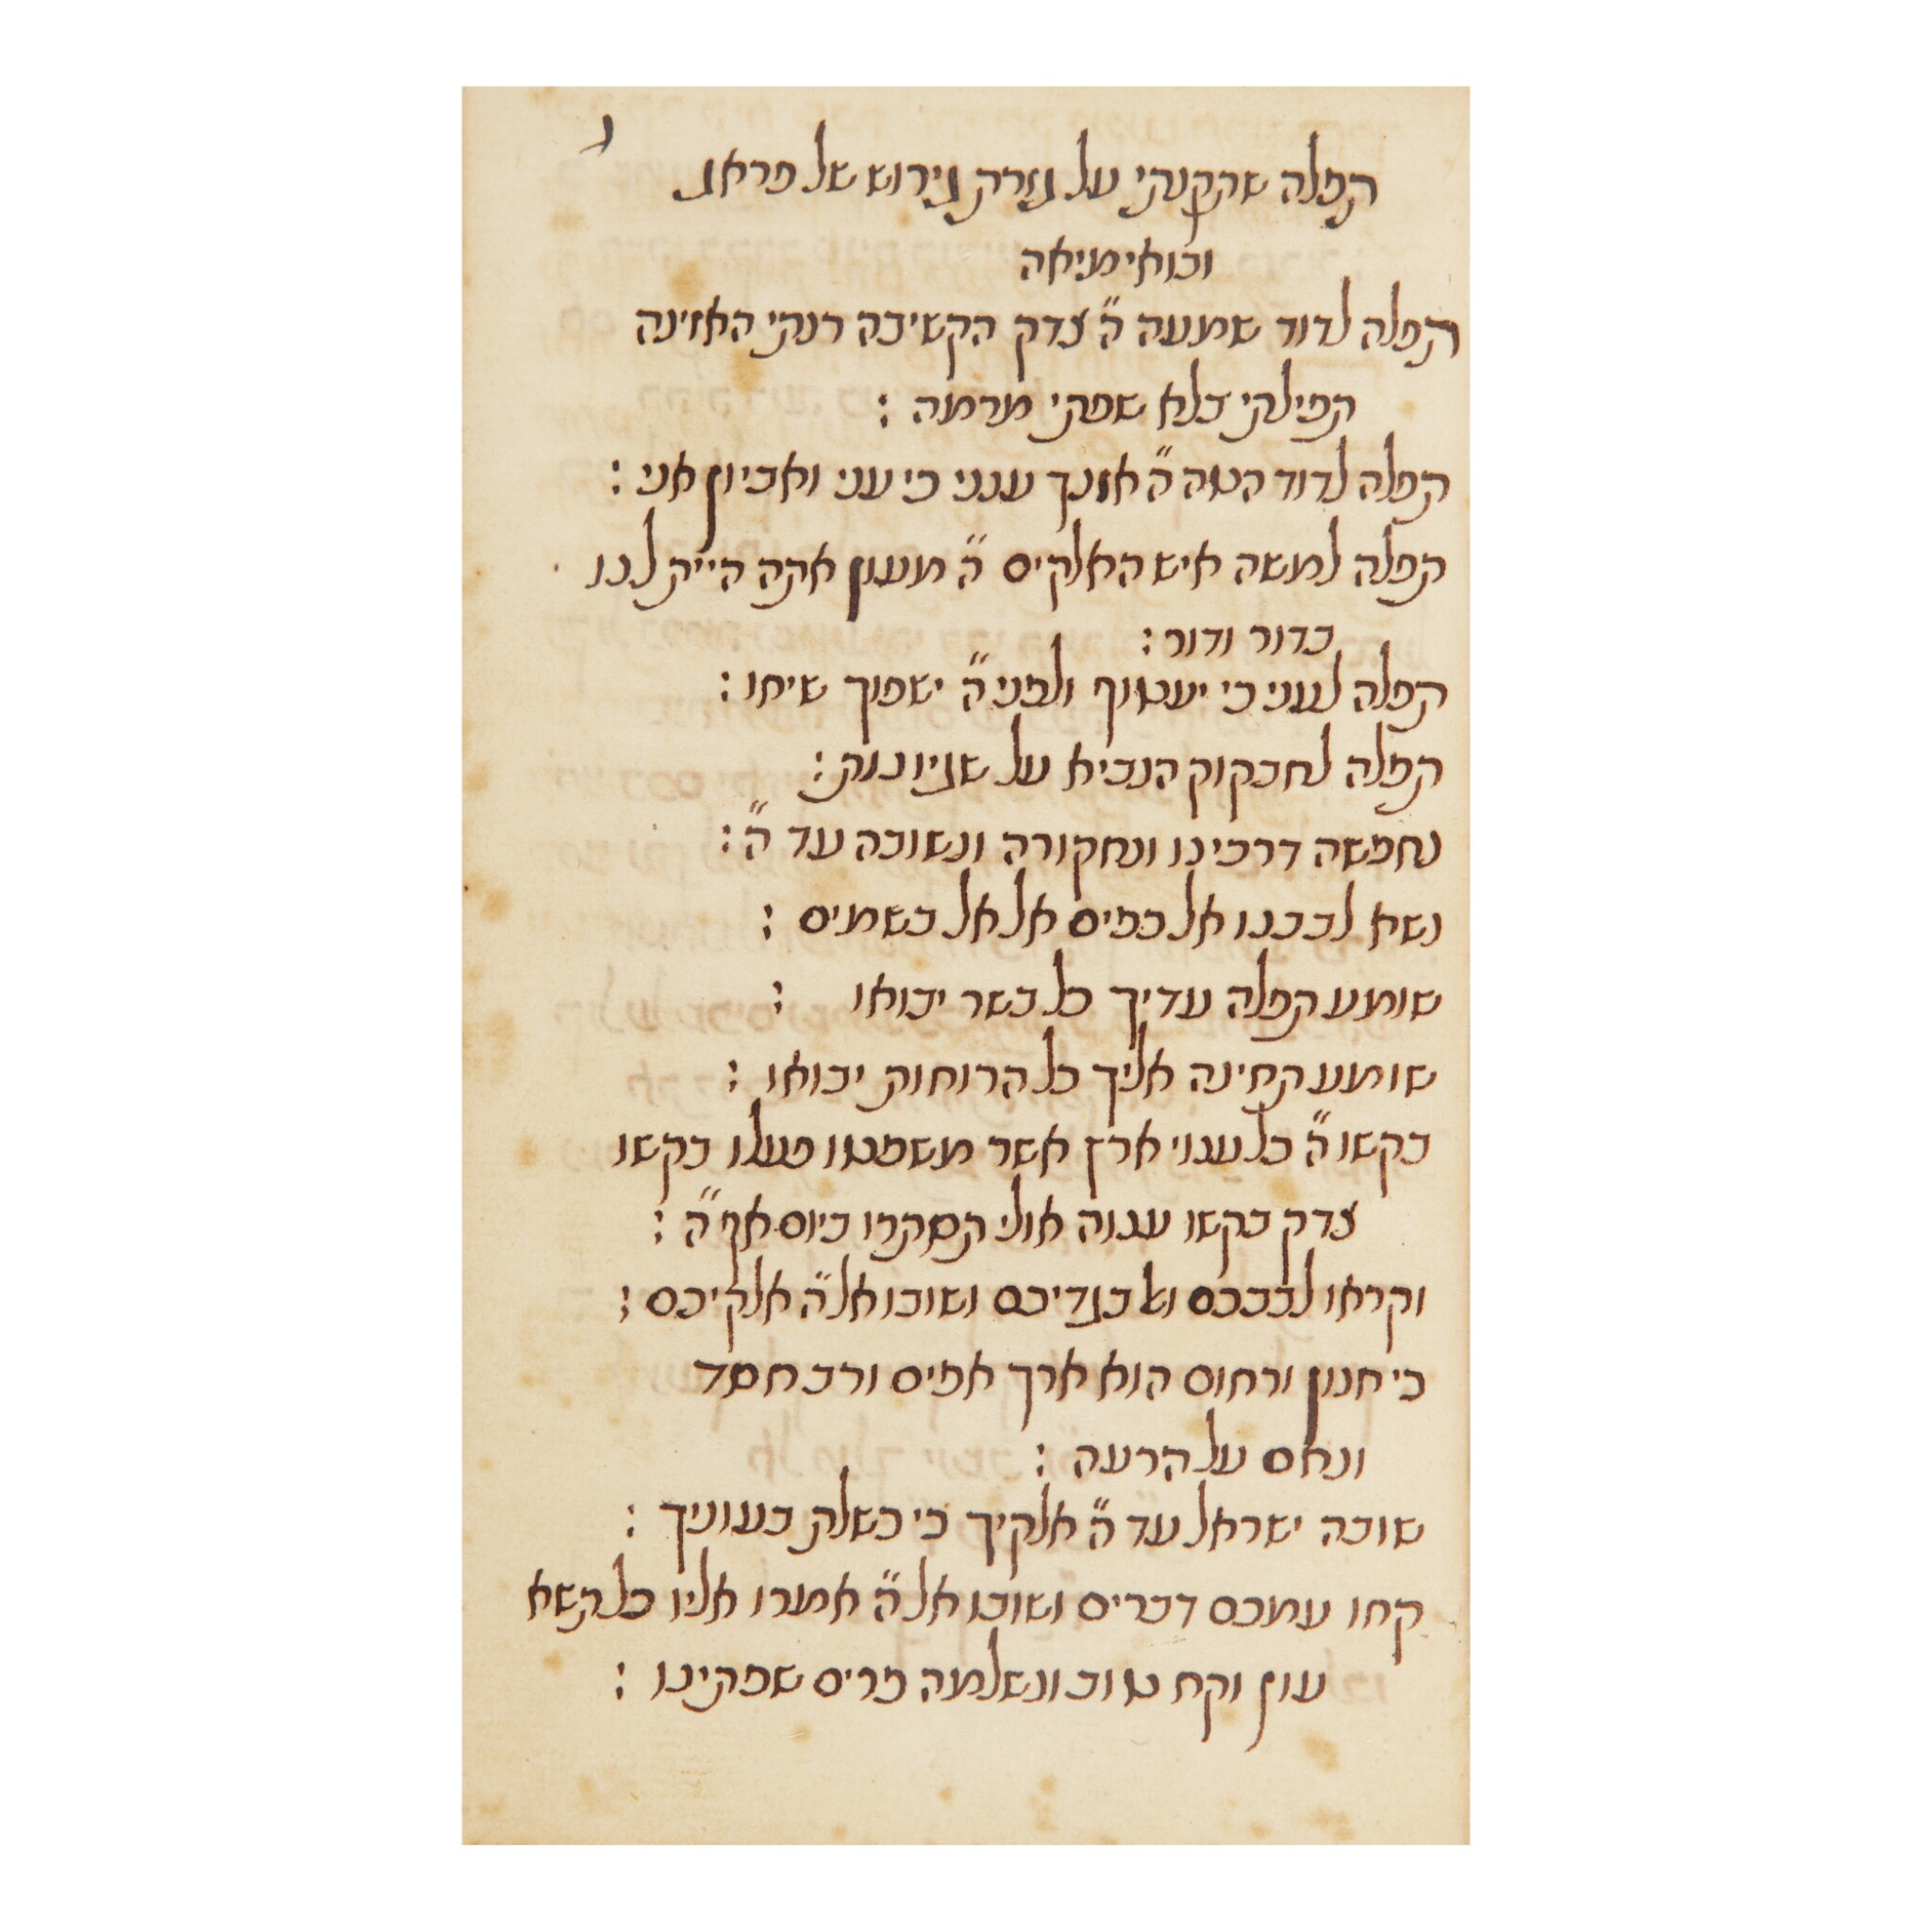 A COLLECTION OF PRAYERS AND FORMULARIES FROM THE SEPHARDIC COMMUNITY OF LONDON, [RABBI MOSES GOMES DE MESQUITA], LONDON: [CA. 1746]